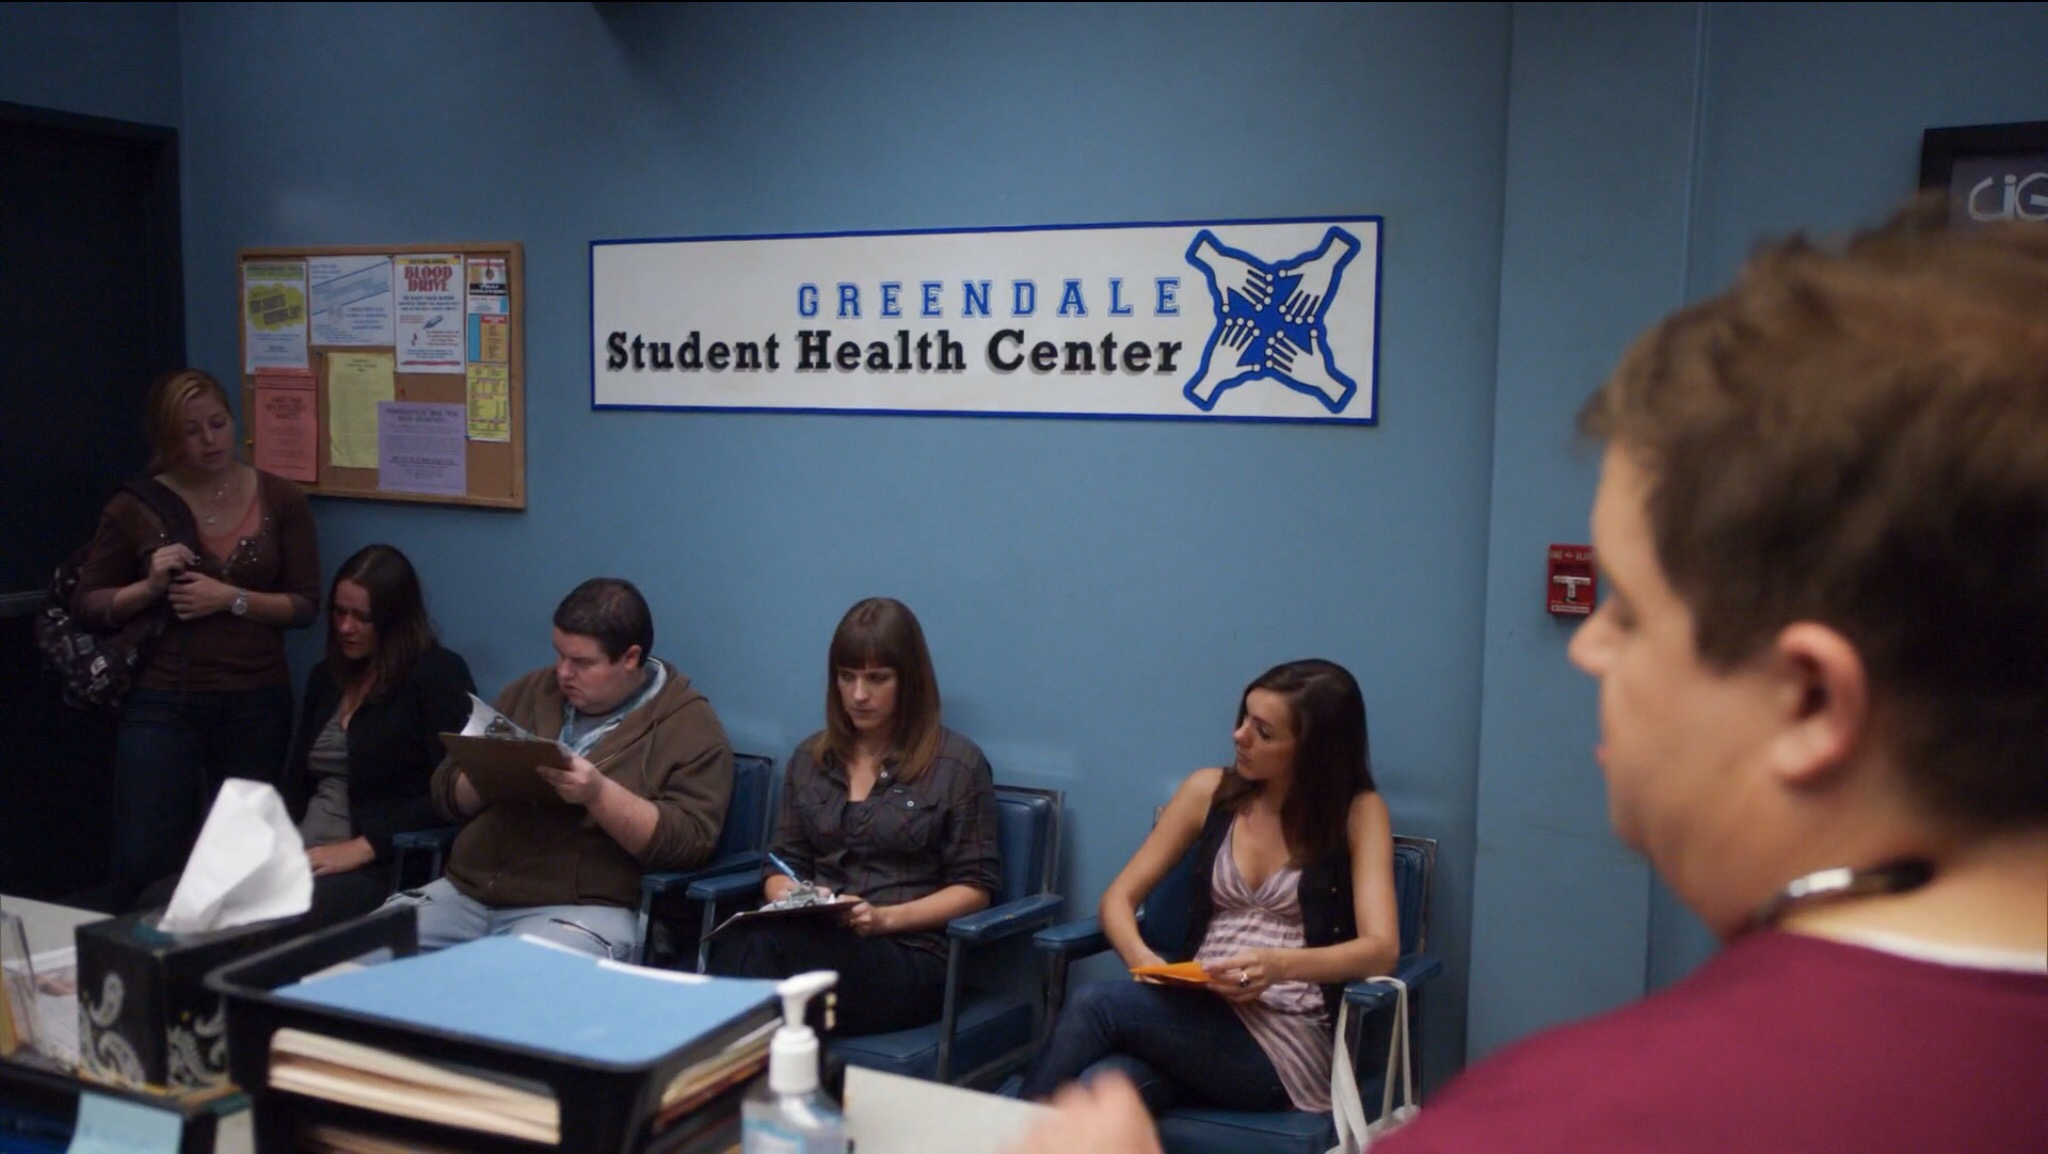 File:Greendale Student Health Center.png